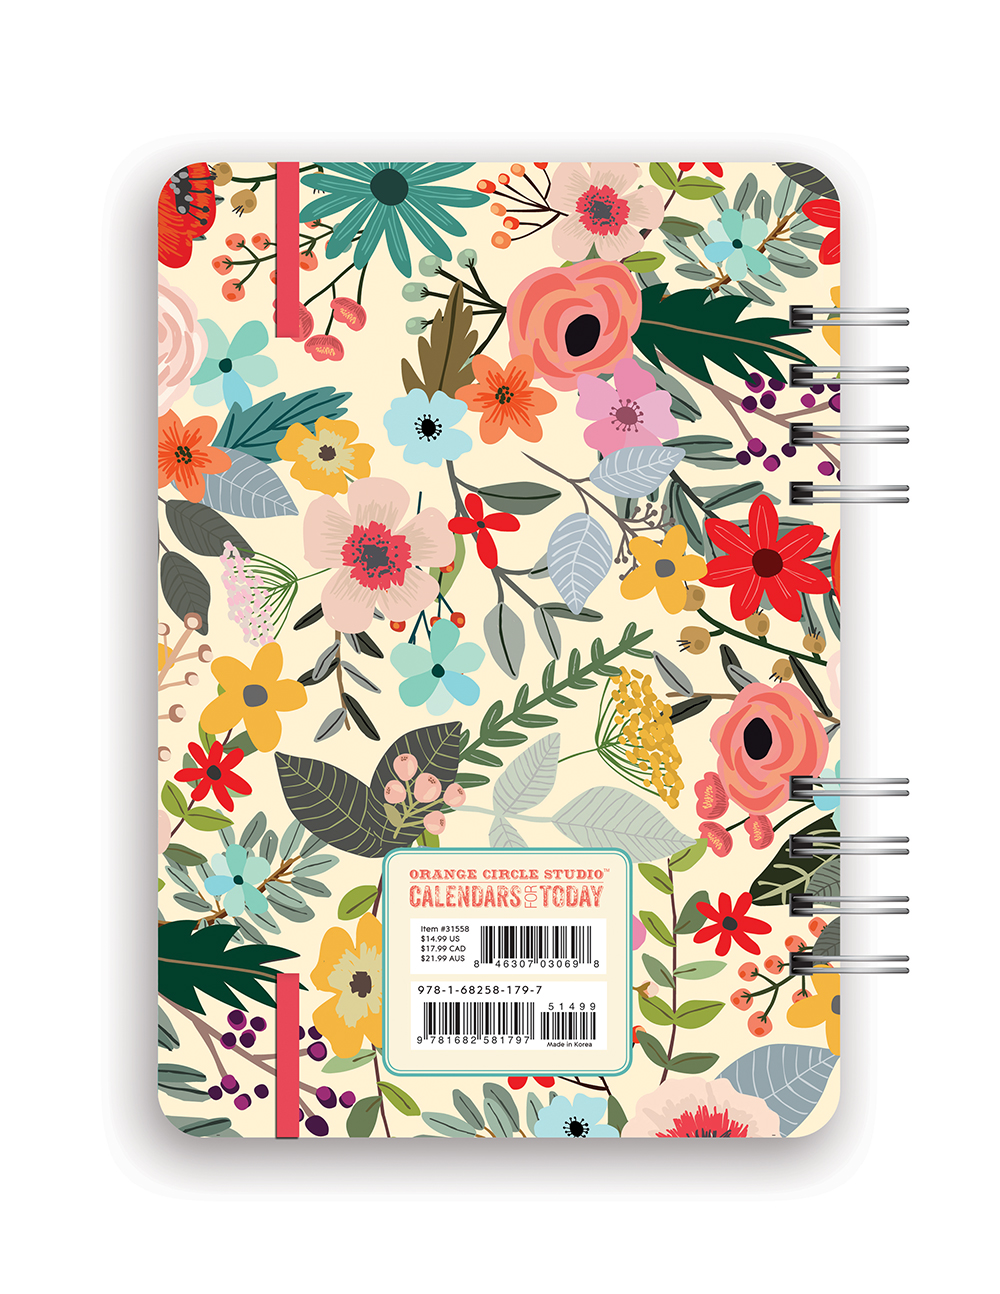 Secret Garden Do it All Planner 2018 by Orange Circle Studio back 9781682581797